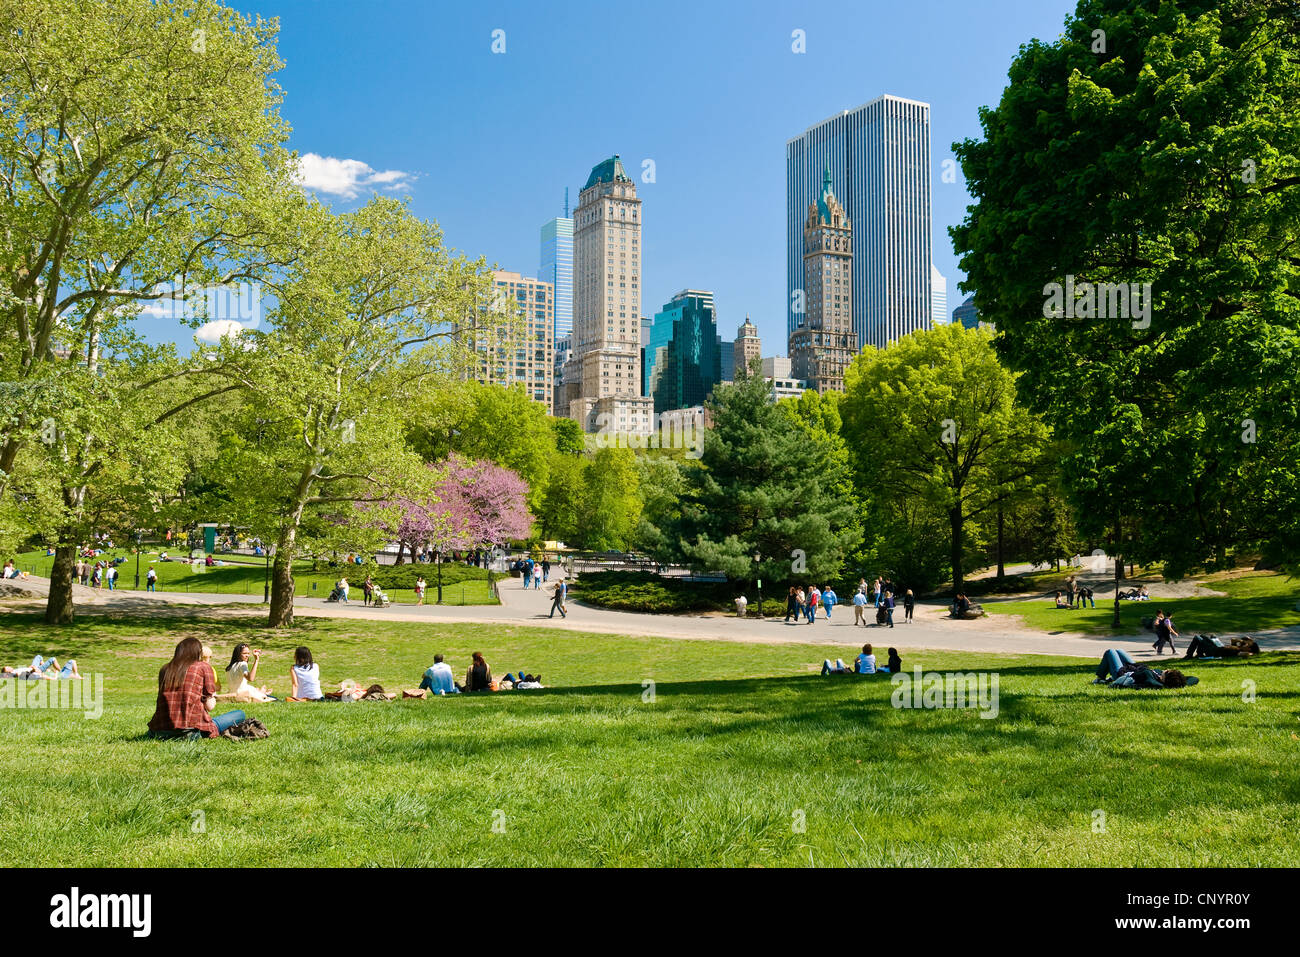 People relaxing in Central Park, New York City in spring season. - Stock Image